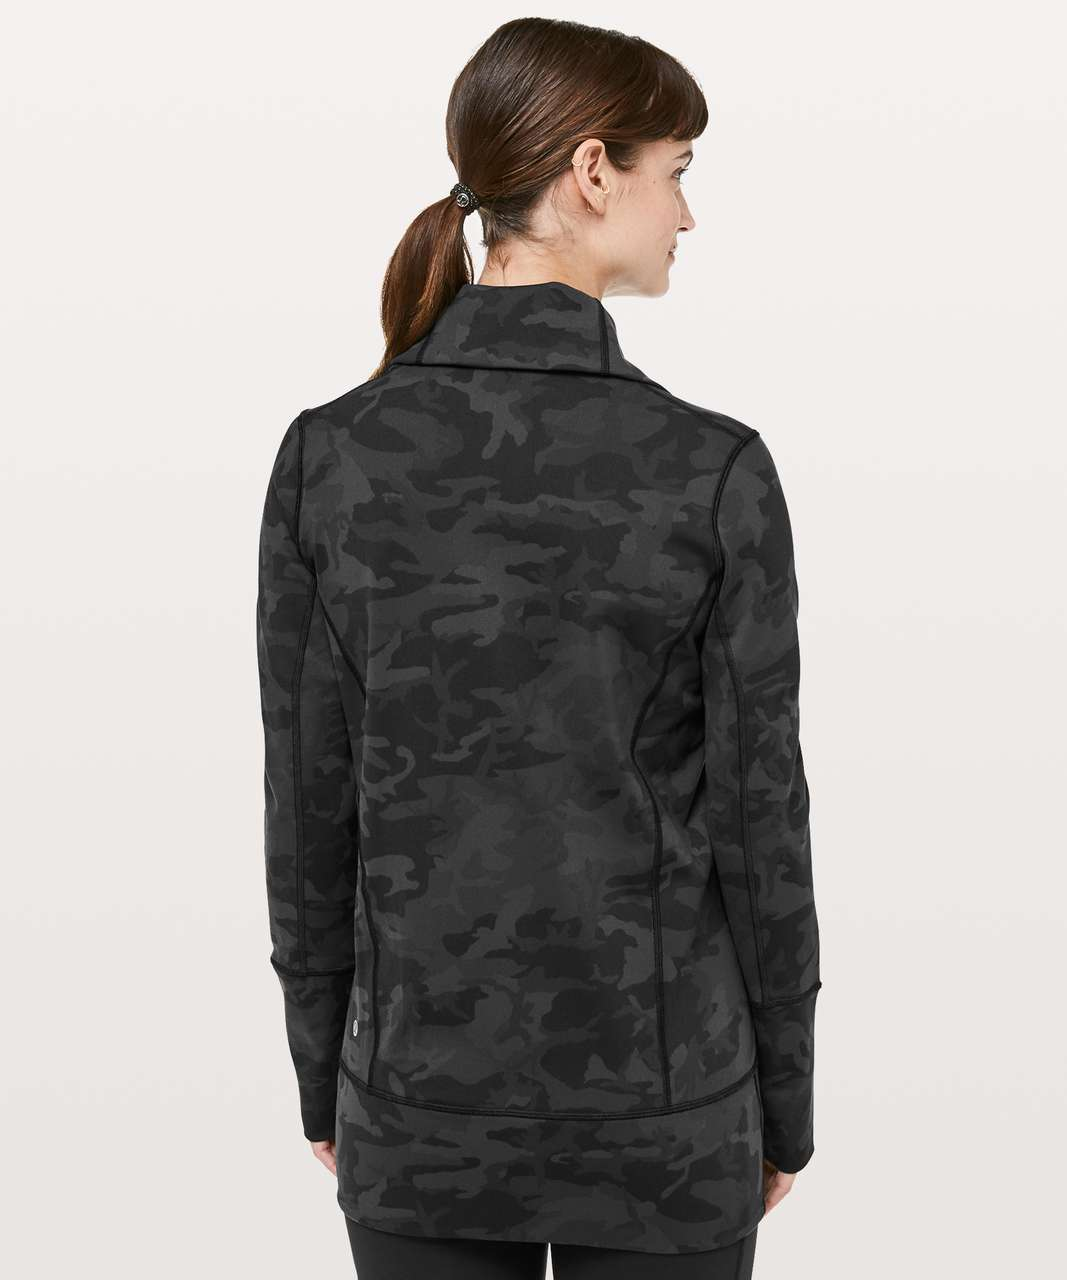 Lululemon In Stride Jacket - Incognito Camo Multi Grey